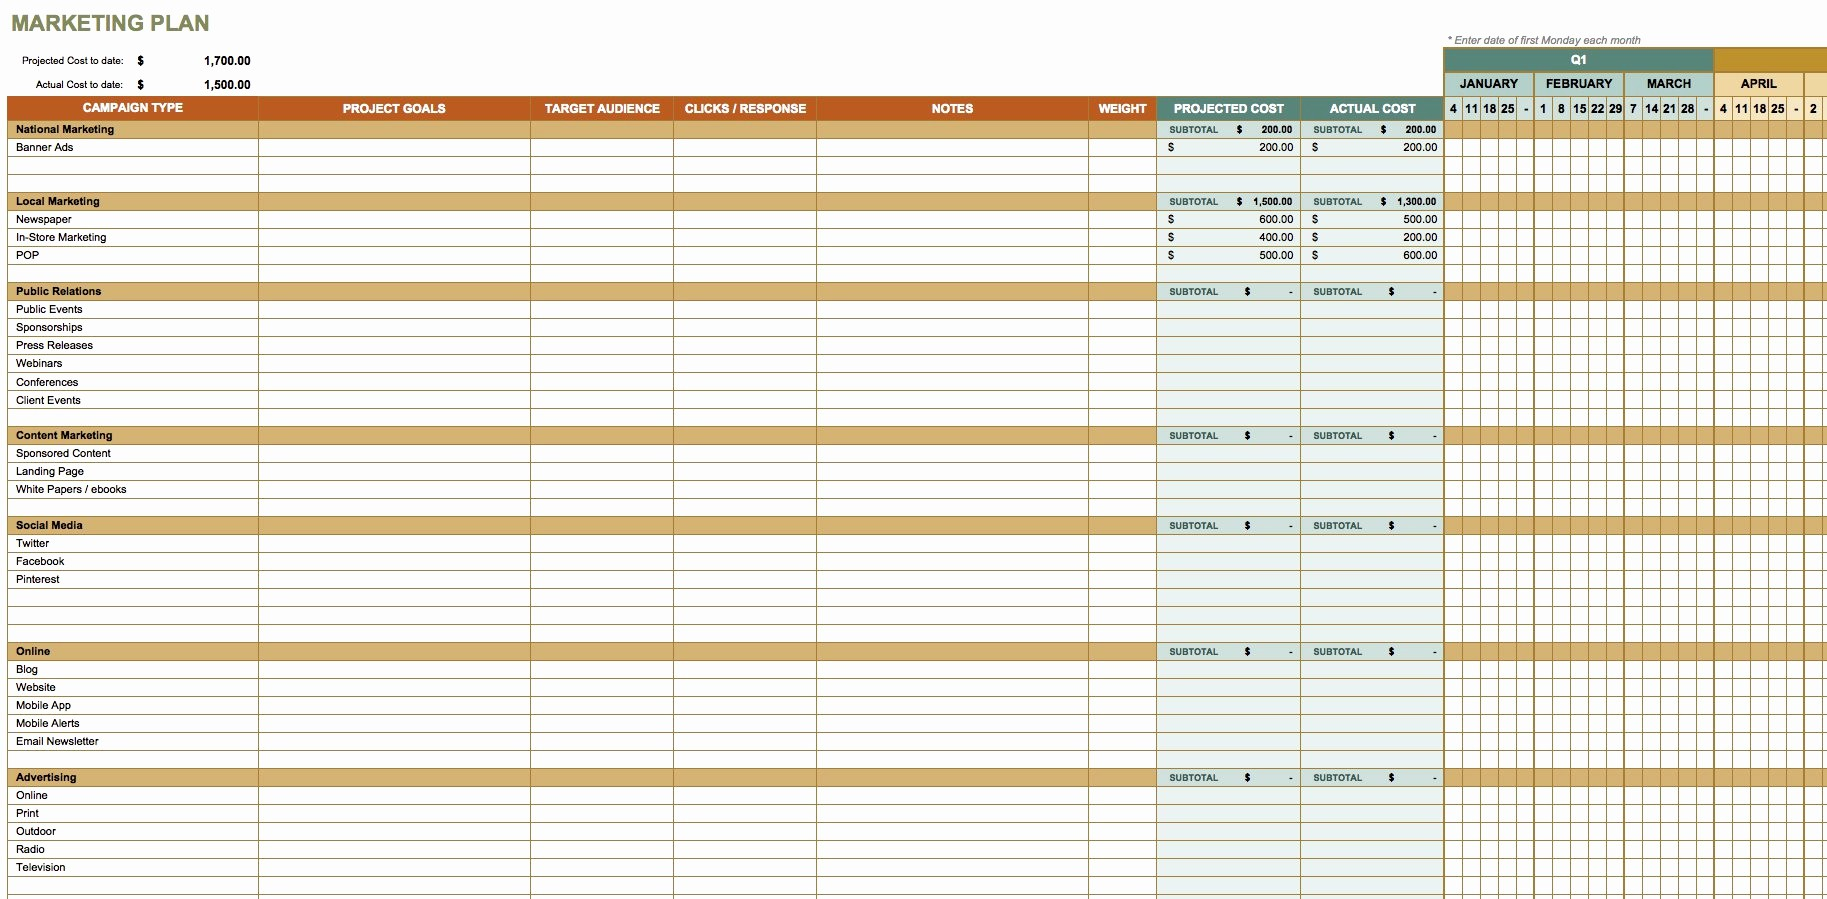 Sales and Marketing Budget Template Elegant Free Marketing Plan Templates for Excel Smartsheet